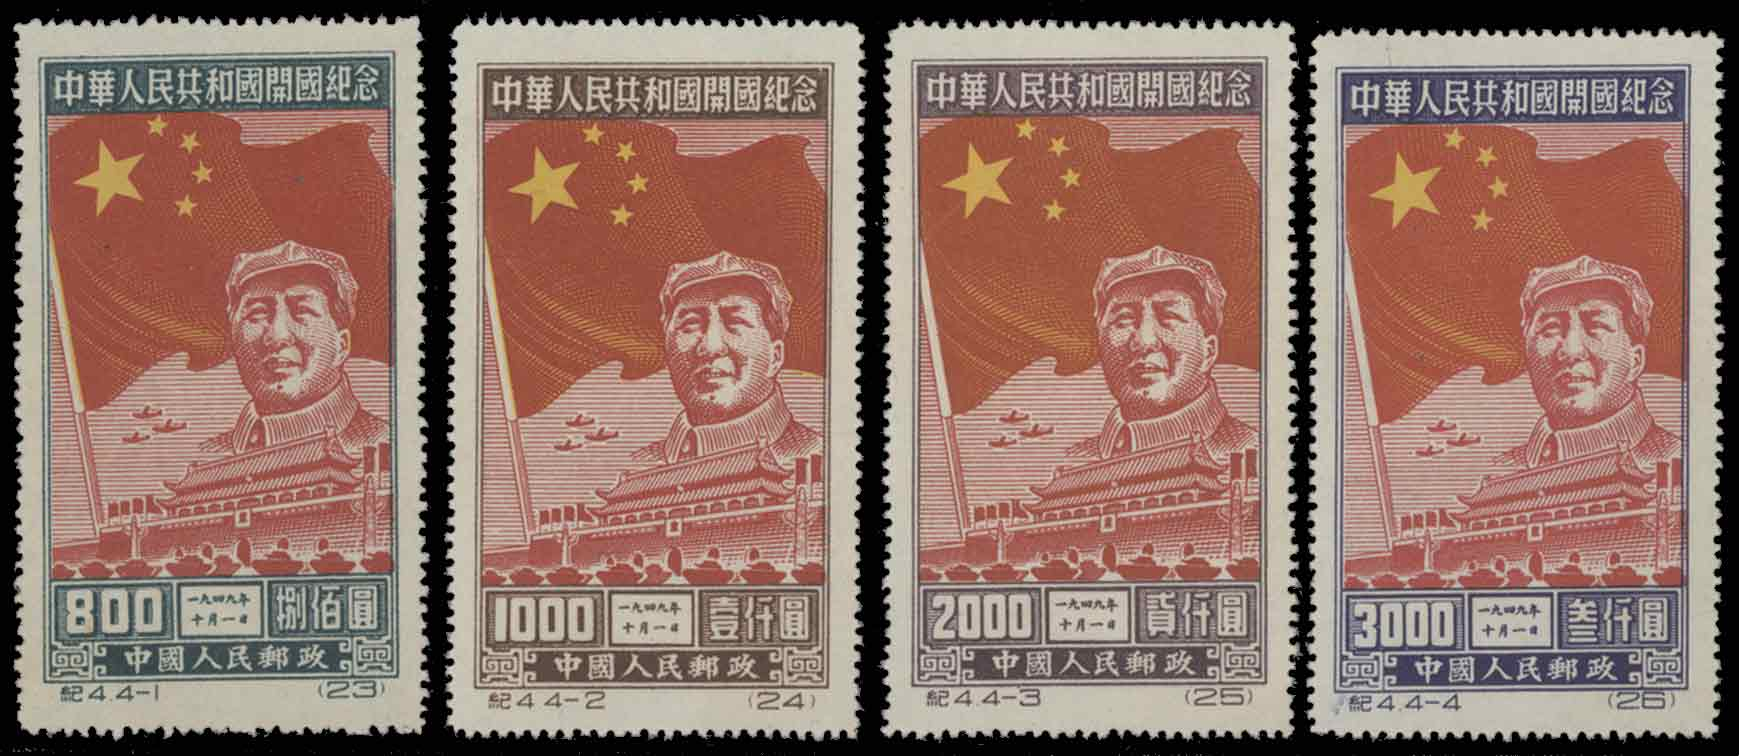 Stamp Auction - china prc - Postage Stamps and Postal